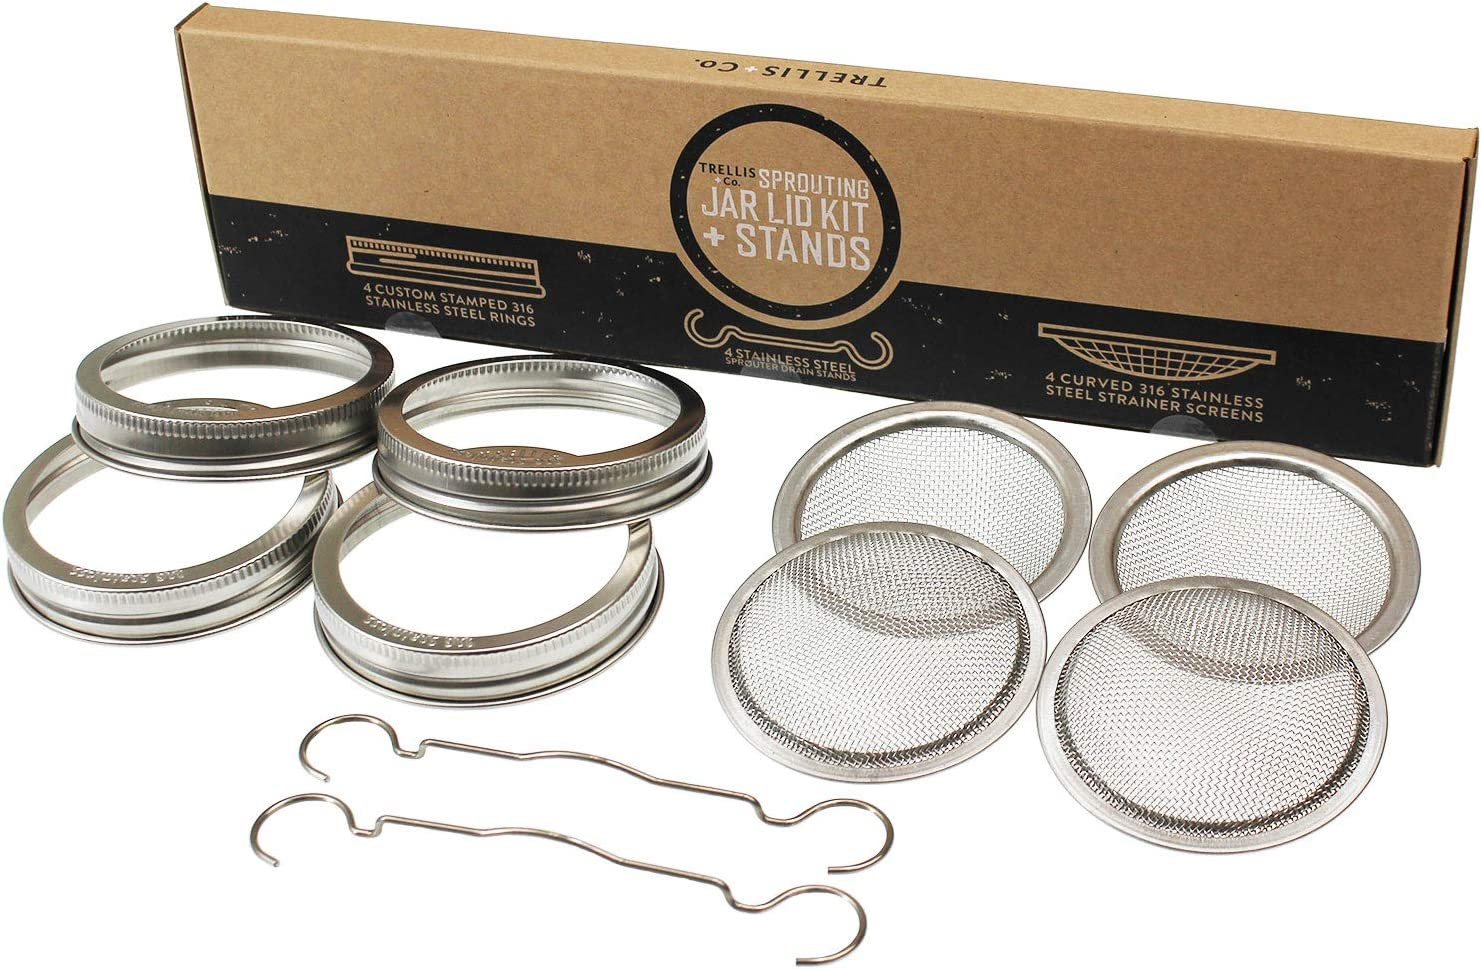 Trellis + Co. | Stainless Steel Sprouting Kit, 4 Pack With Sprouting Stands | Rust Proof 316 Stainless, Curved Mesh, Fits Most Wide Mouth Mason Jars | Grow Your Own Organic Sprouts From Seeds